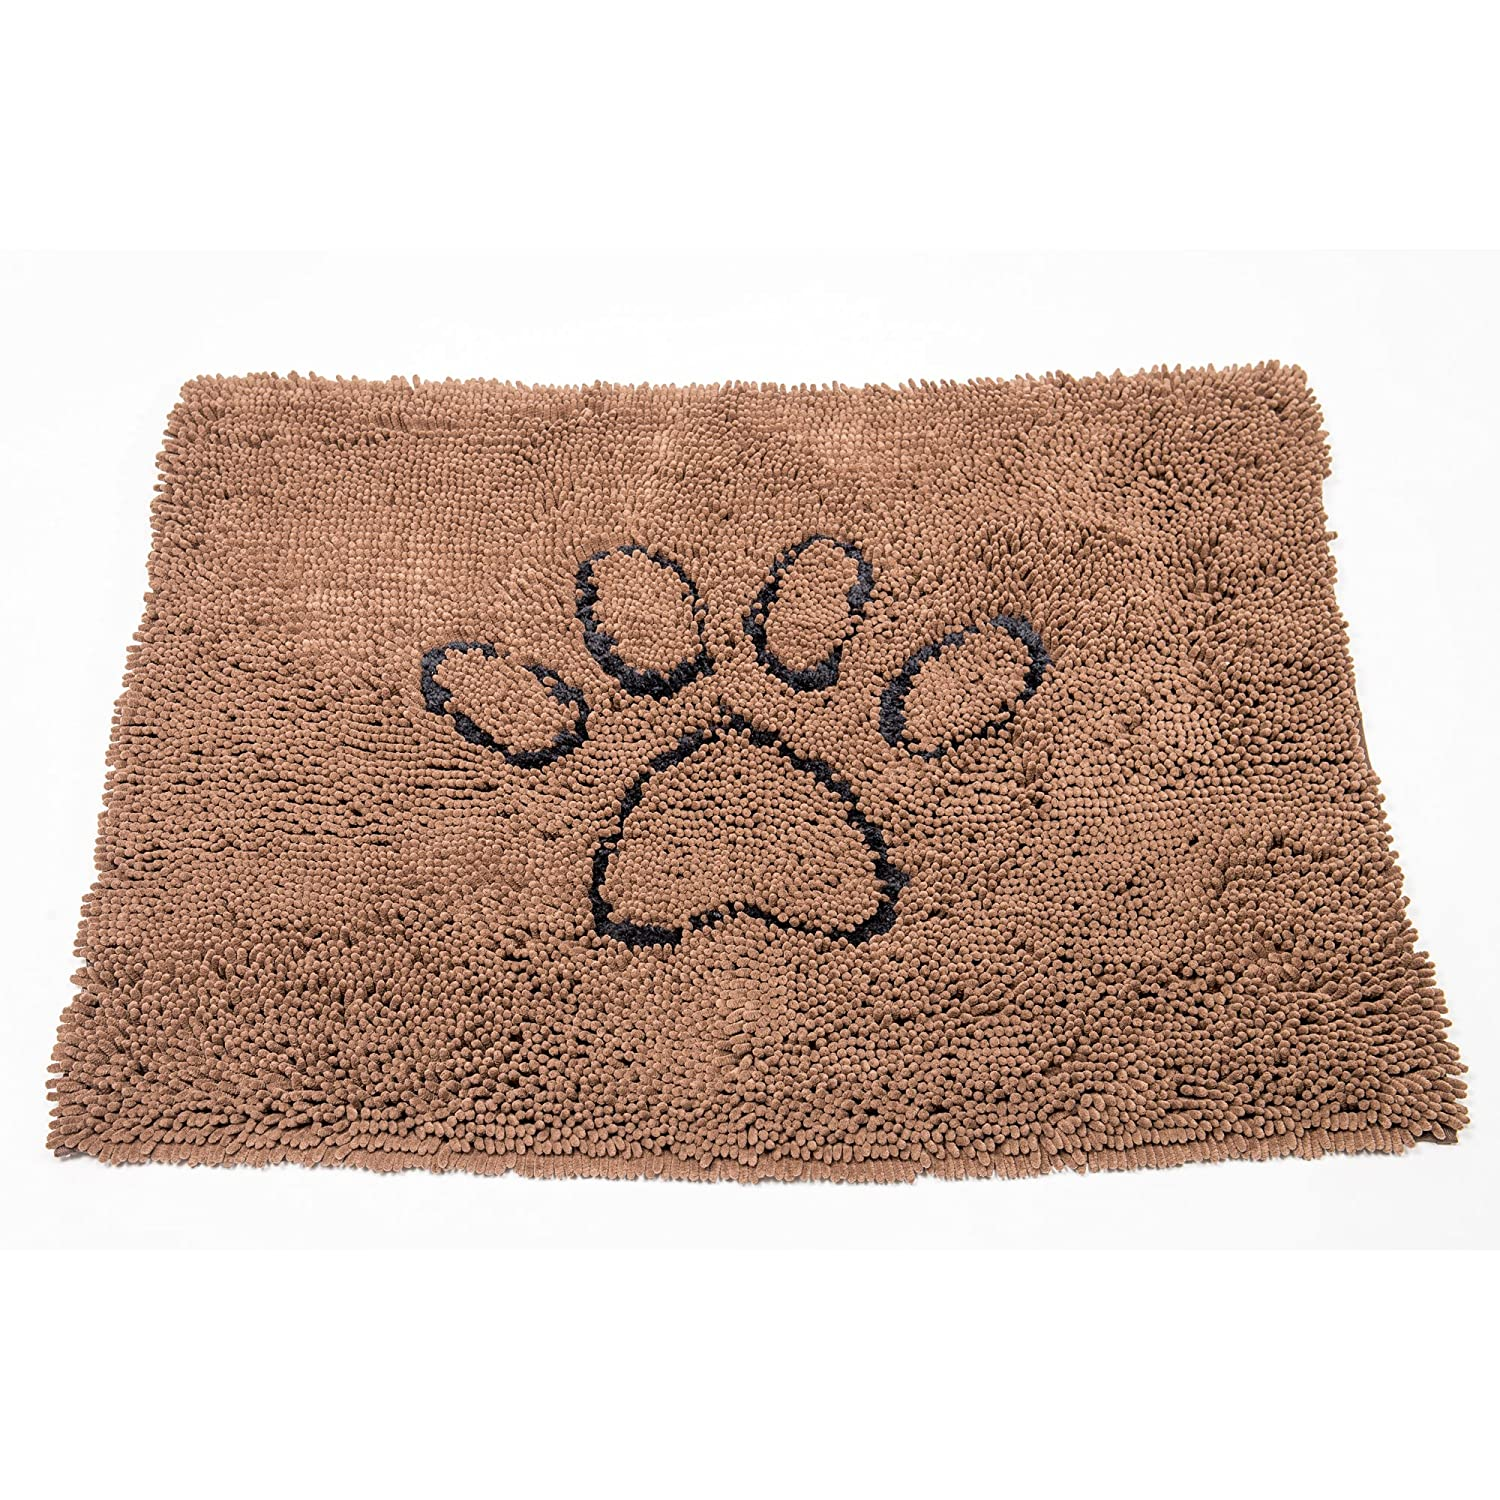 outdoor for tropez proof to best rug sisal pet how an decorate dogs pets space st howtodecorate your rugs with